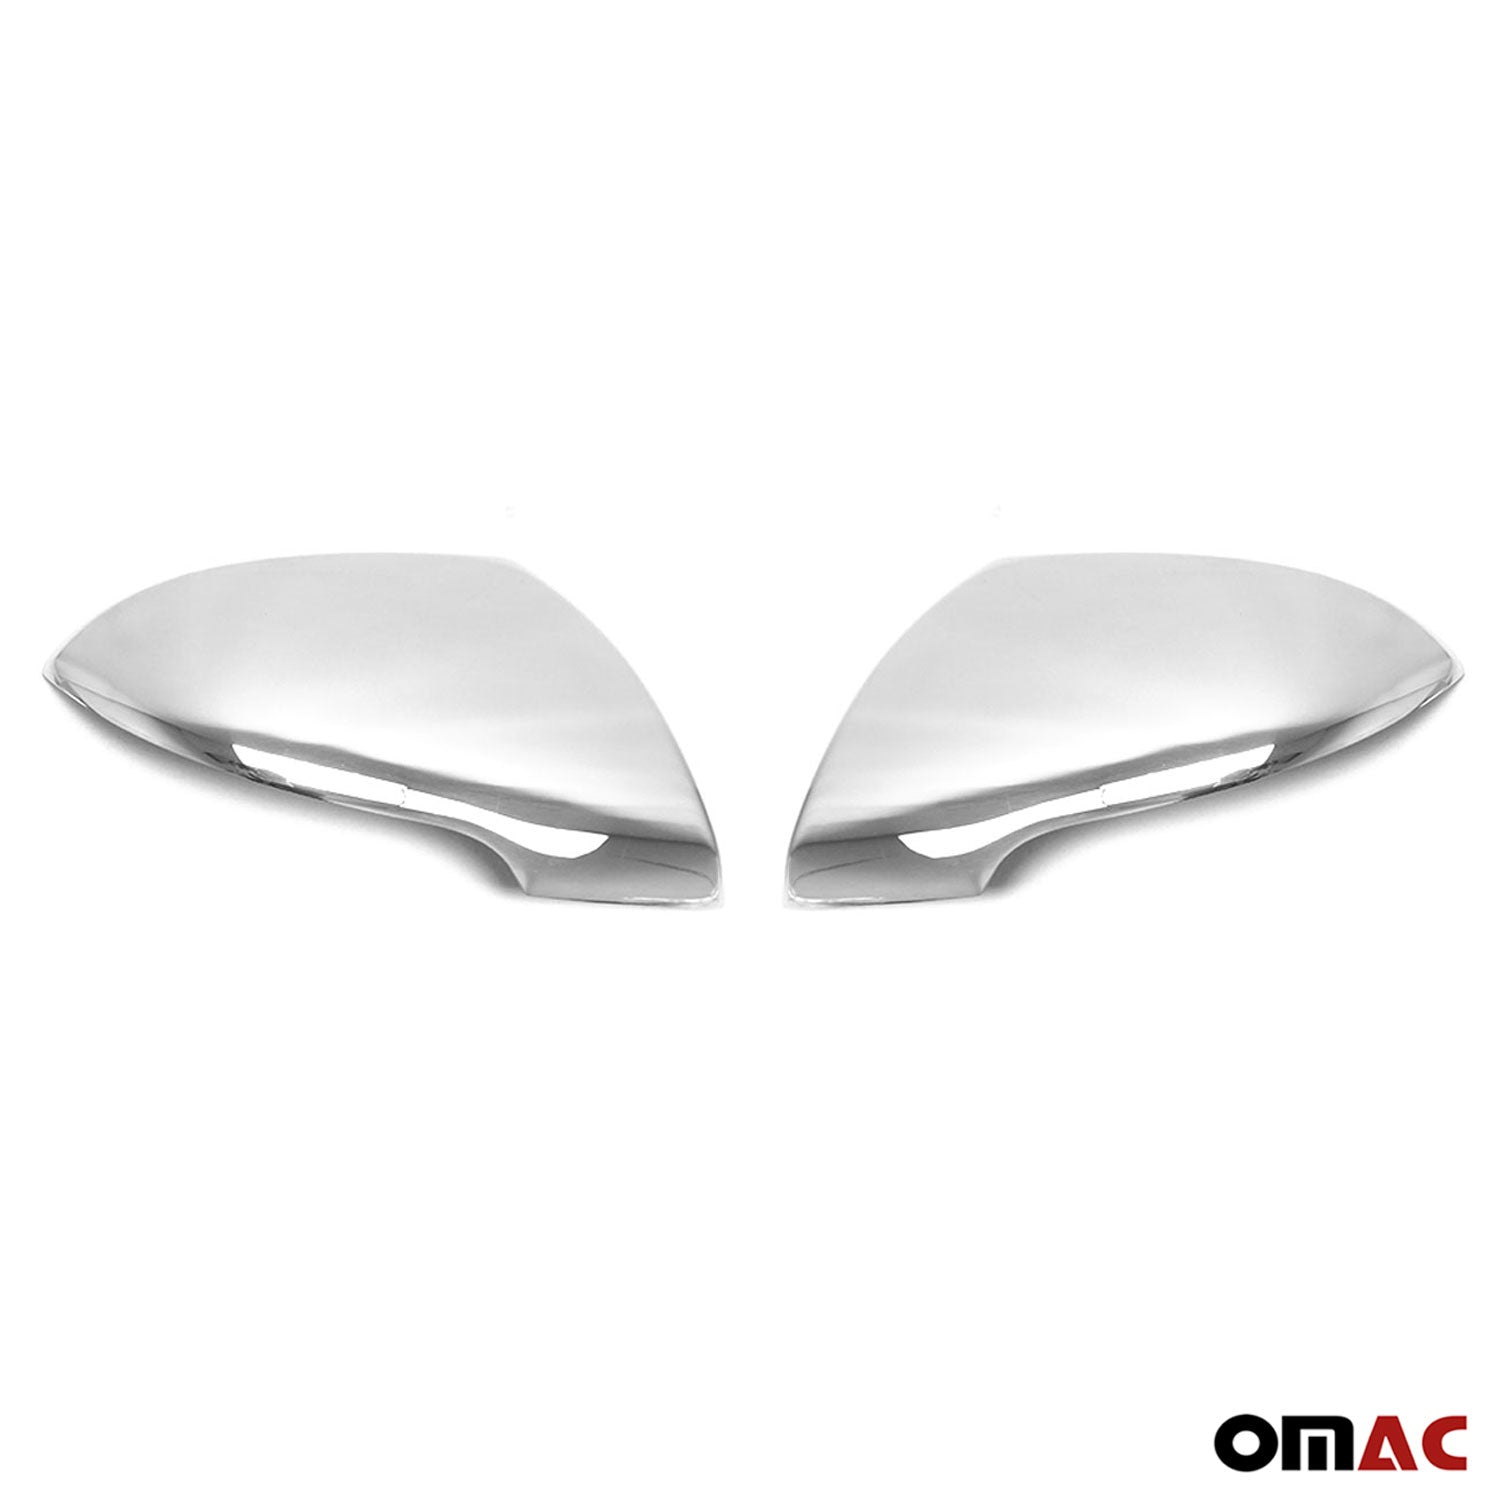 Chrome Side Mirror Cover Cap 2 Pcs Stainless Steel Fits Kia Sportage 2010-2014